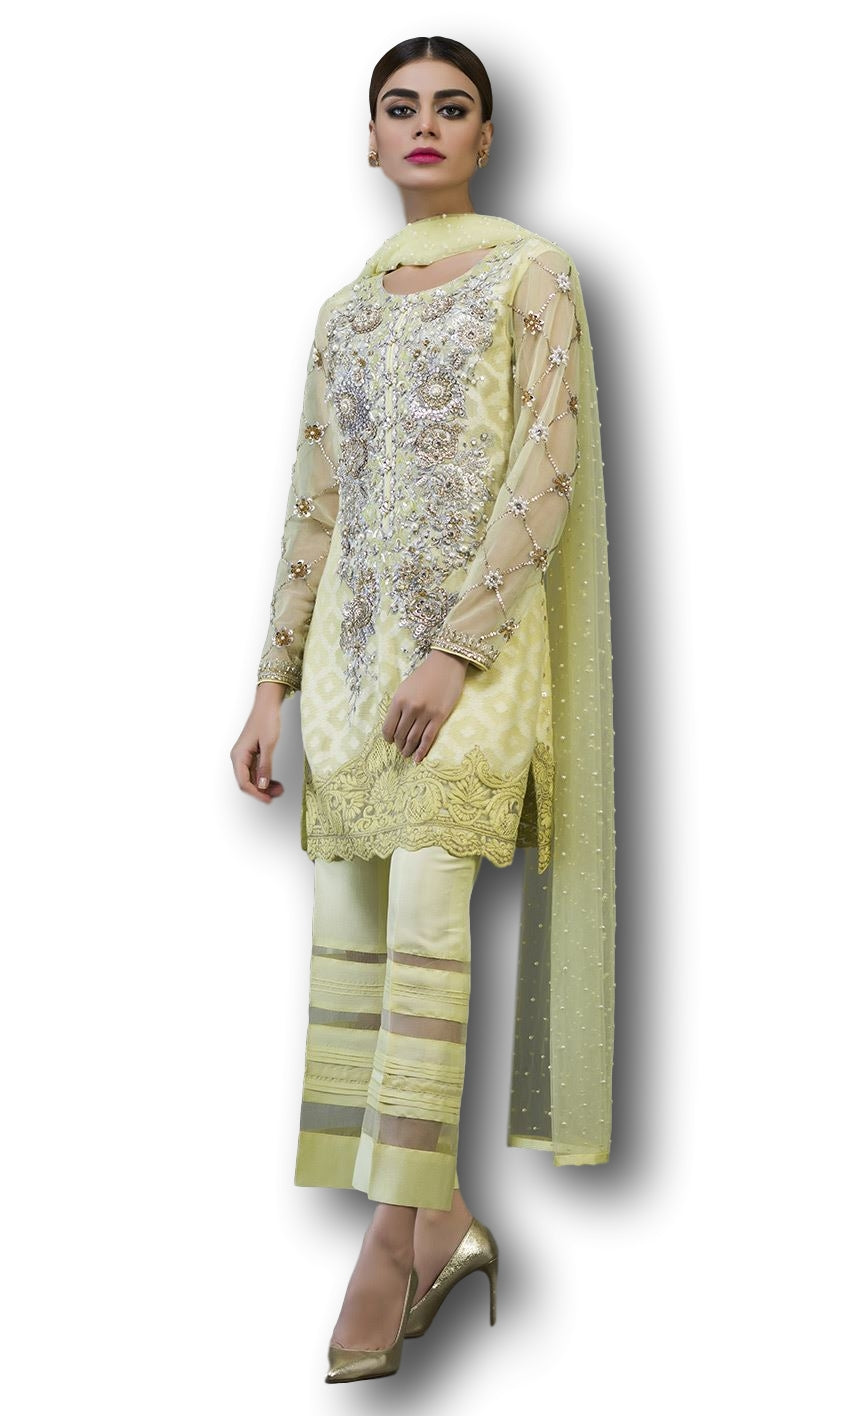 Lemon yellow Designer Salwar Kameez